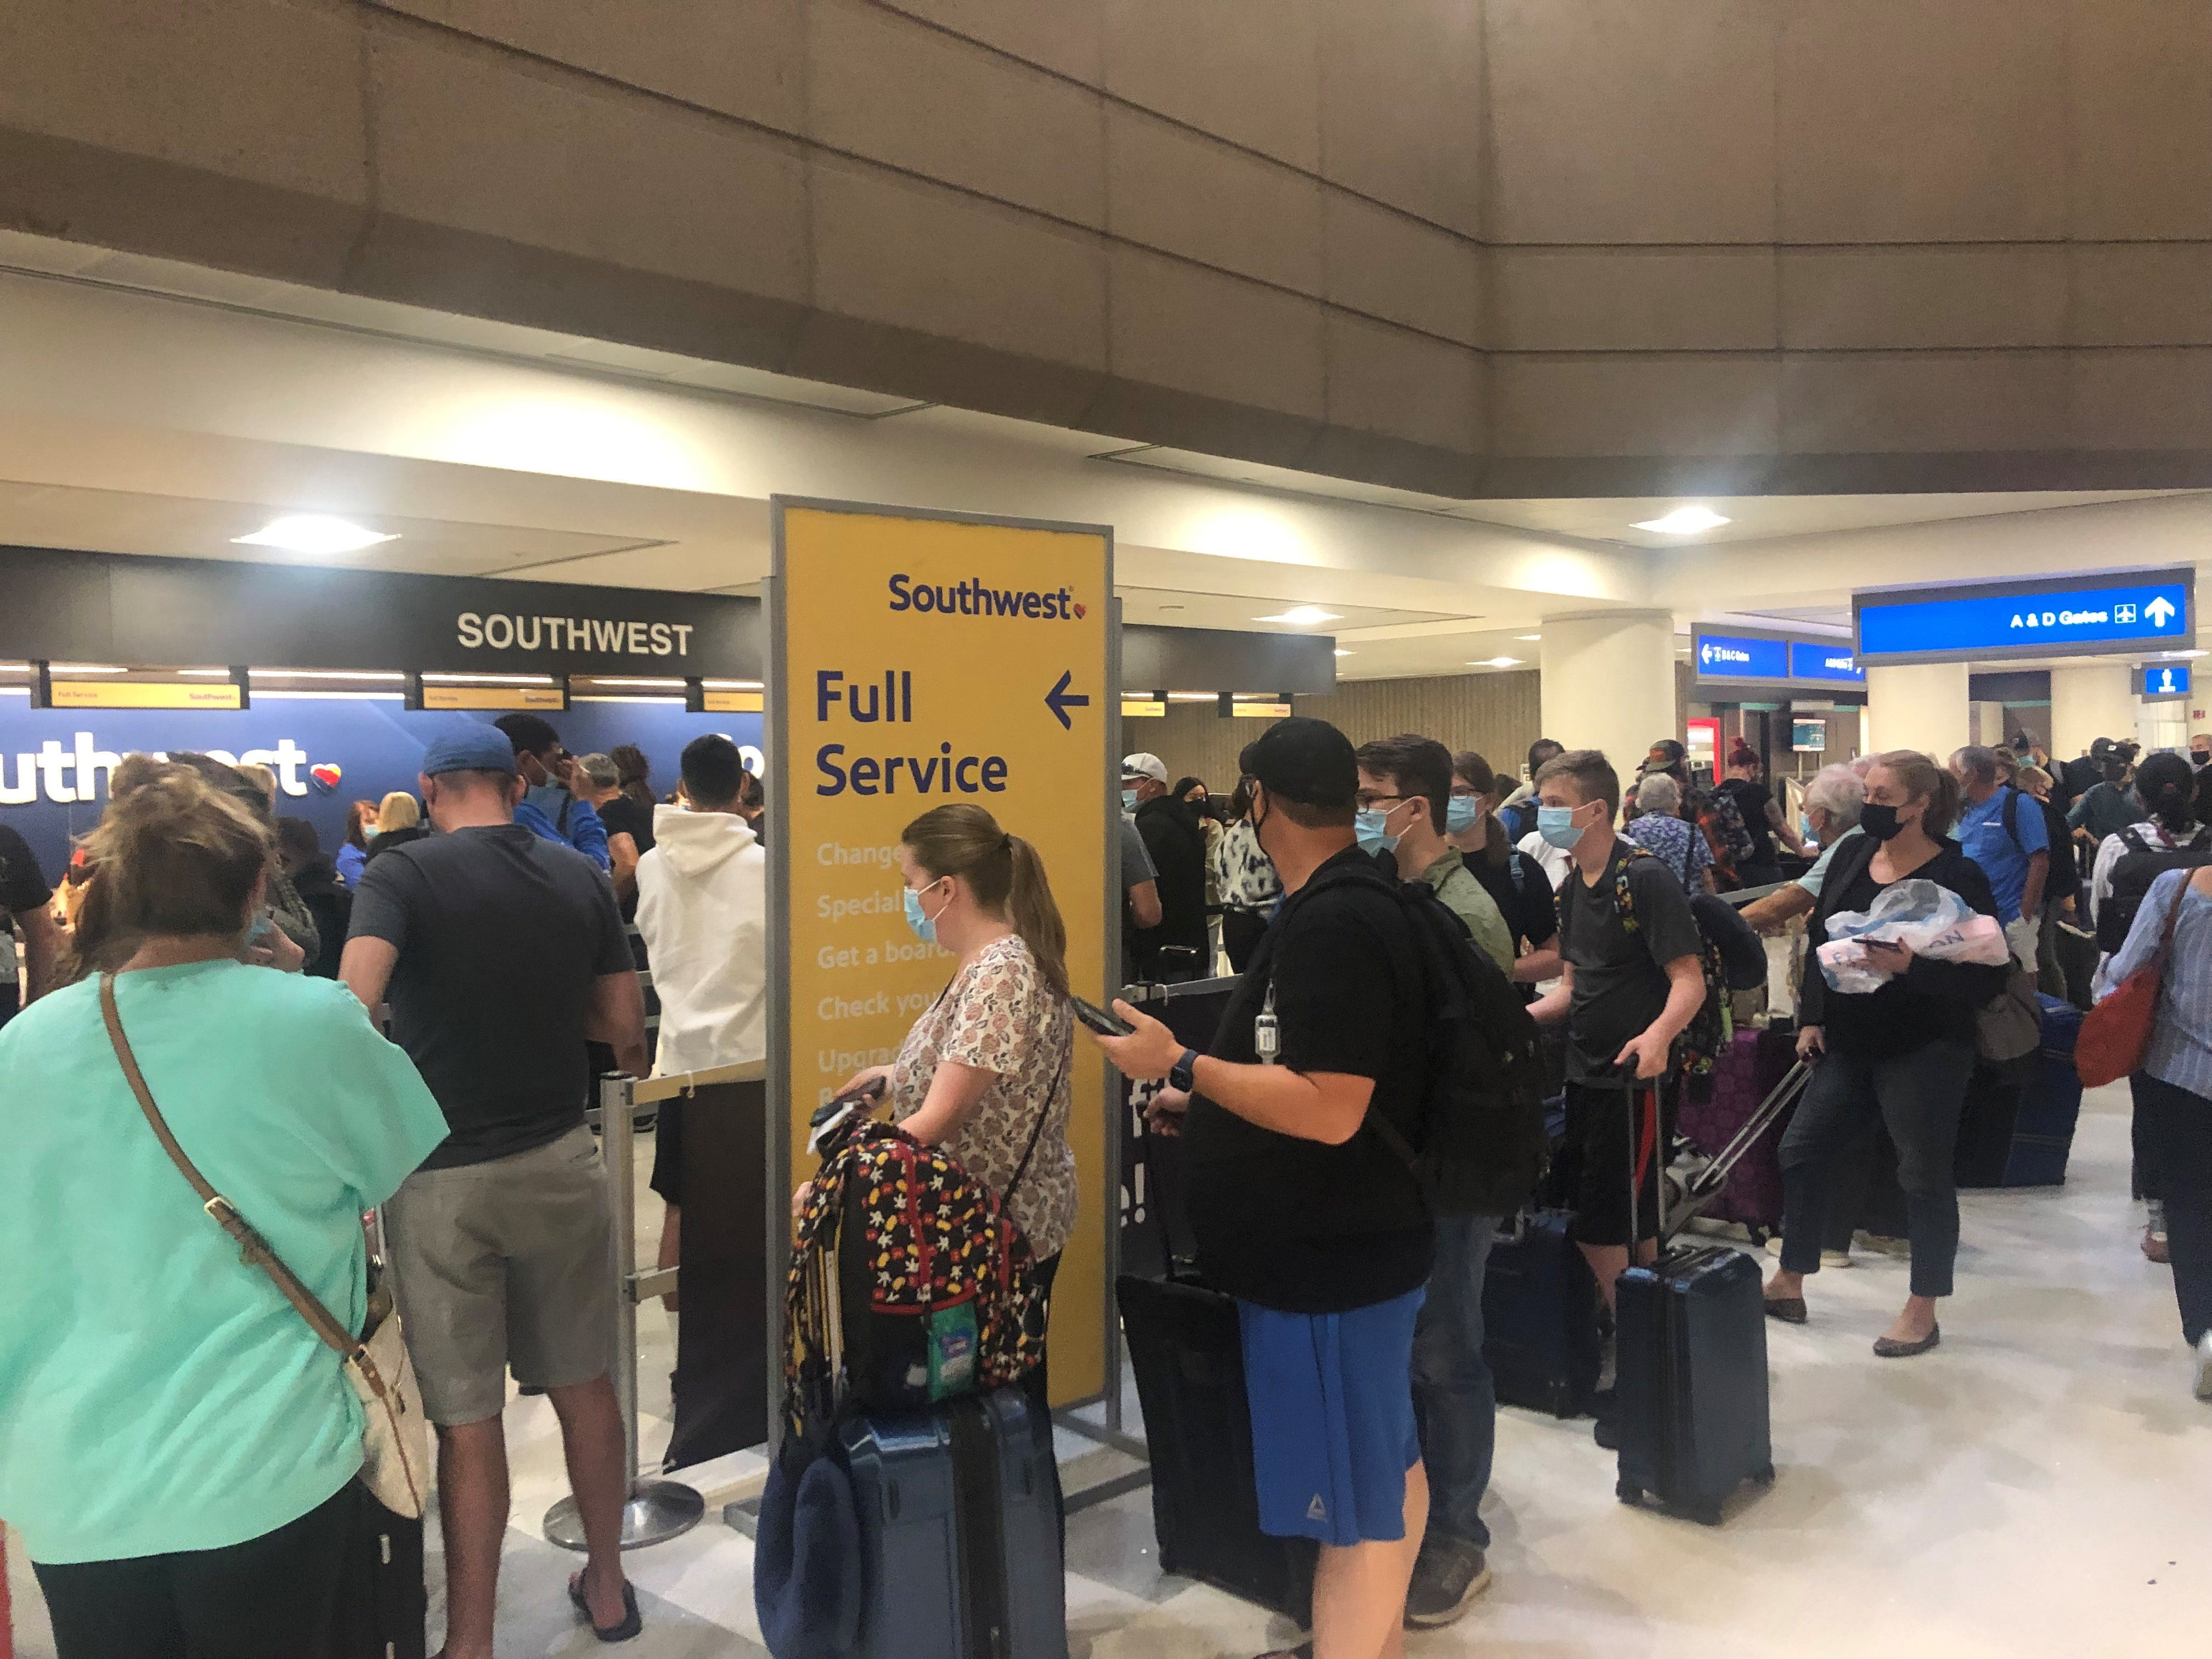 Southwest president says nothing nefarious behind flight cancellations, airline eyes holiday travel cuts